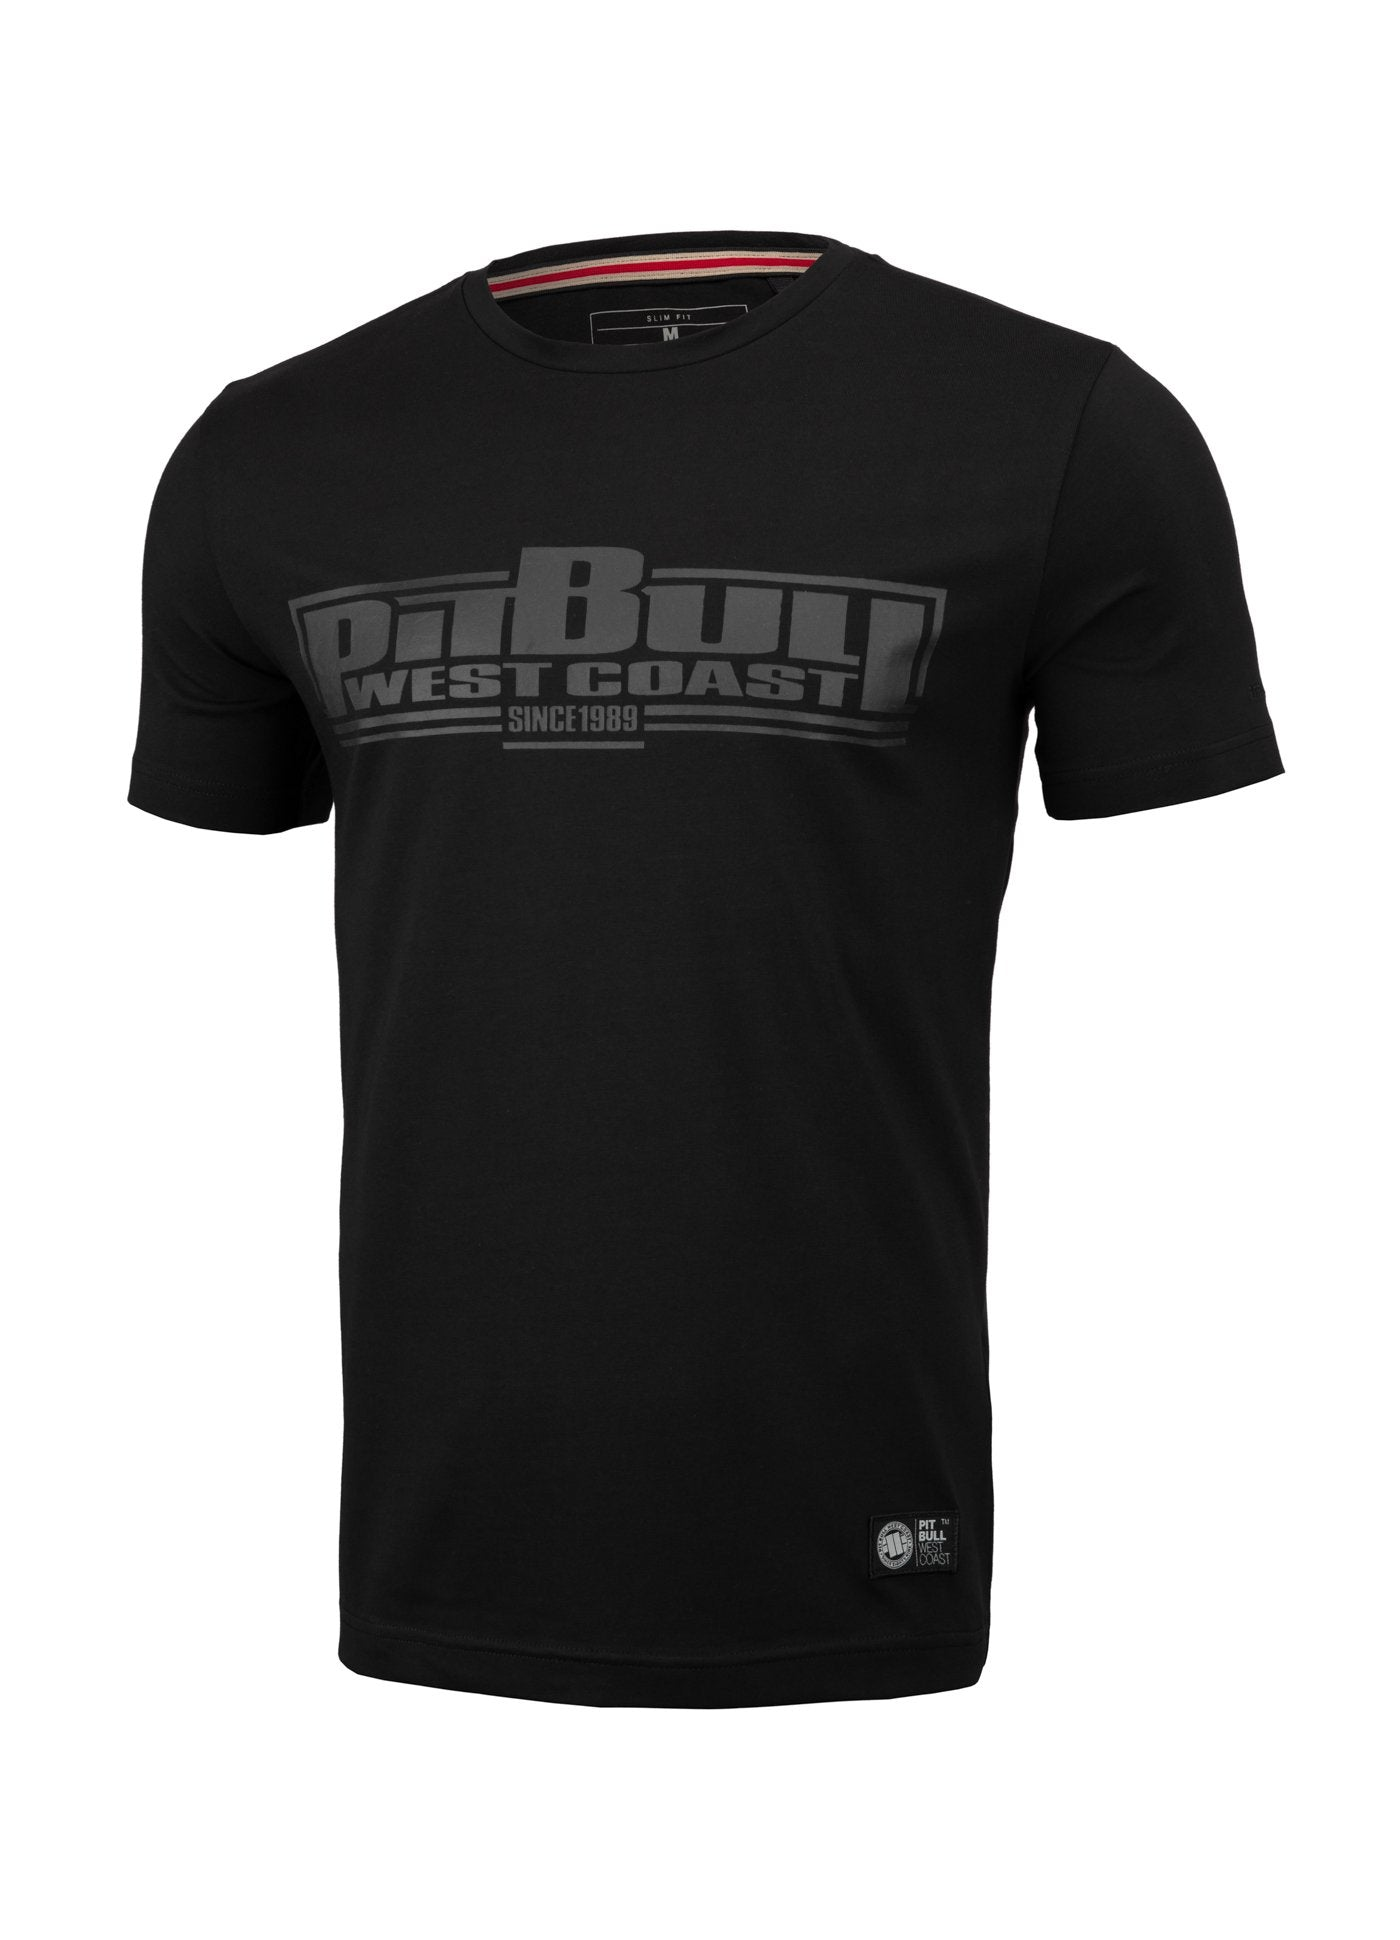 T-shirt Slim Fit Boxing Black - Pitbull West Coast U.S.A.